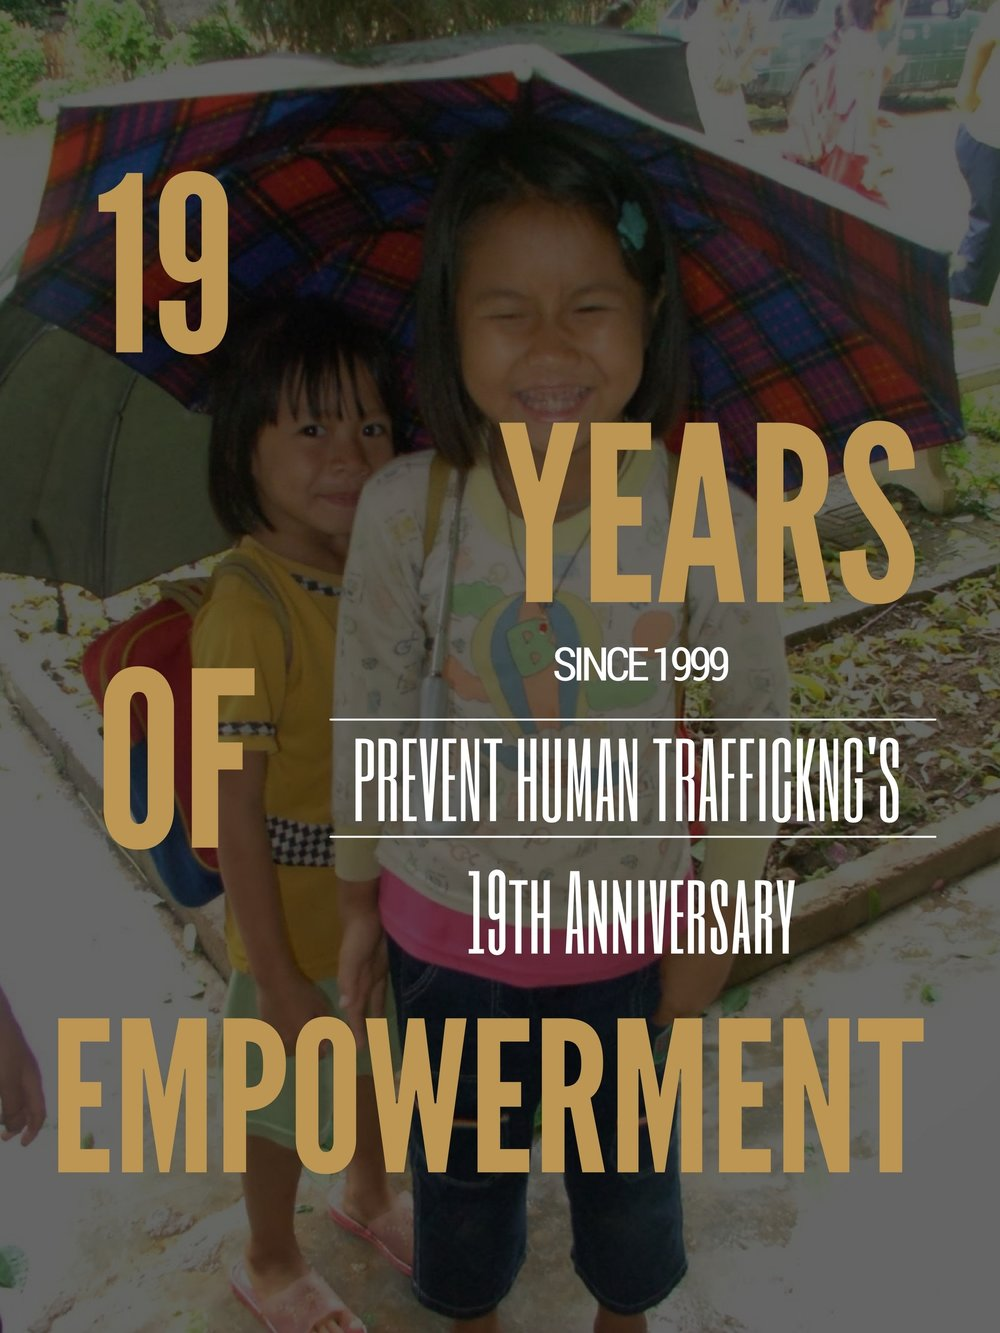 preventhumantrafficking27s28pht2919thanniversarycelebration21.jpg